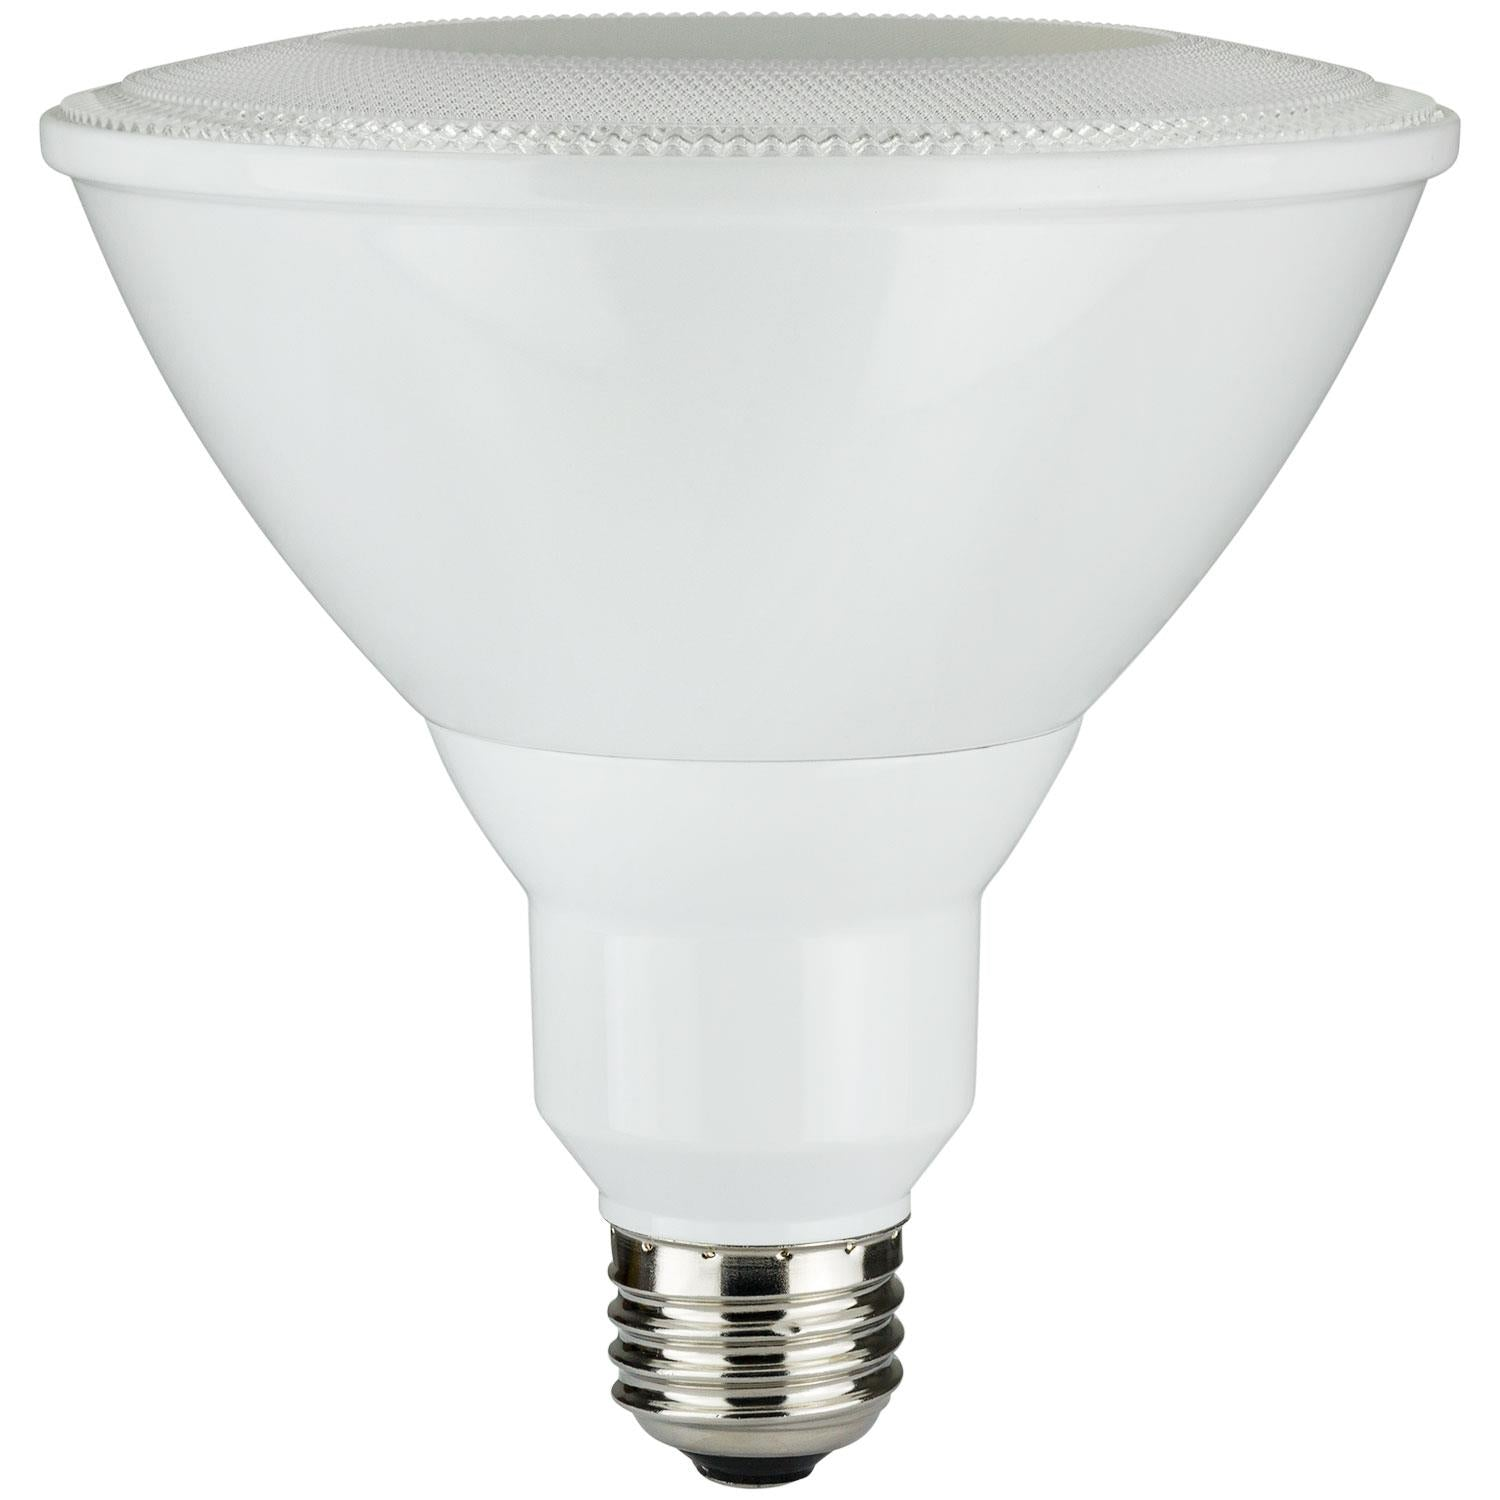 Sunlite 88325-SU LED 18w PAR38 Light Bulbs 4000K Cool White Medium (E26) Base